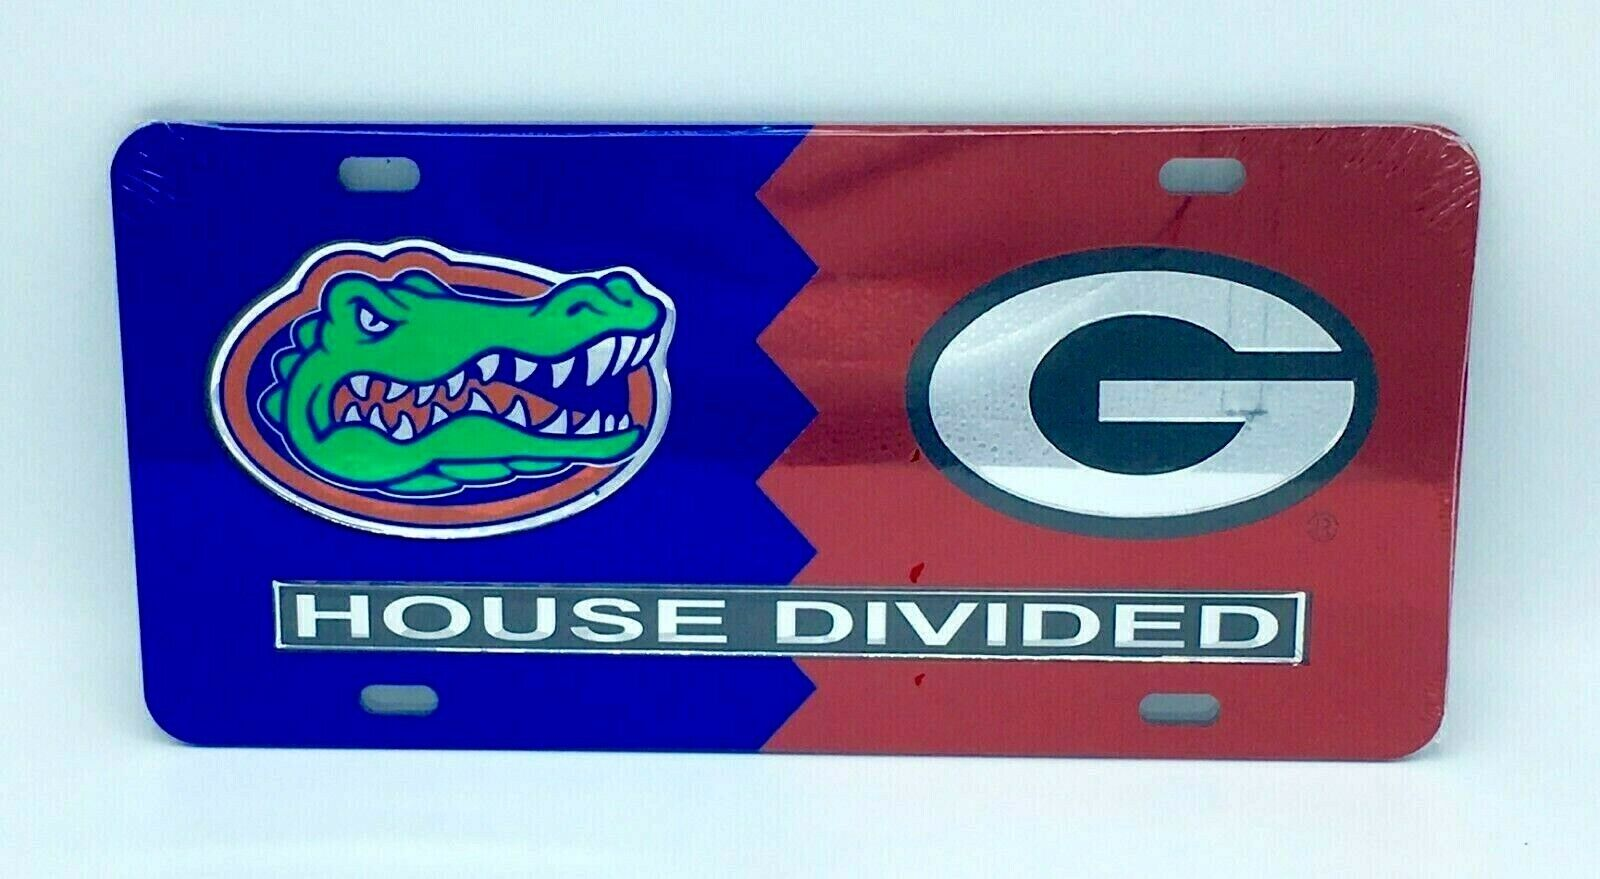 House Divided Mirrored Car Tag License Plate Alabama Crimson Tide Ole Miss Rebels